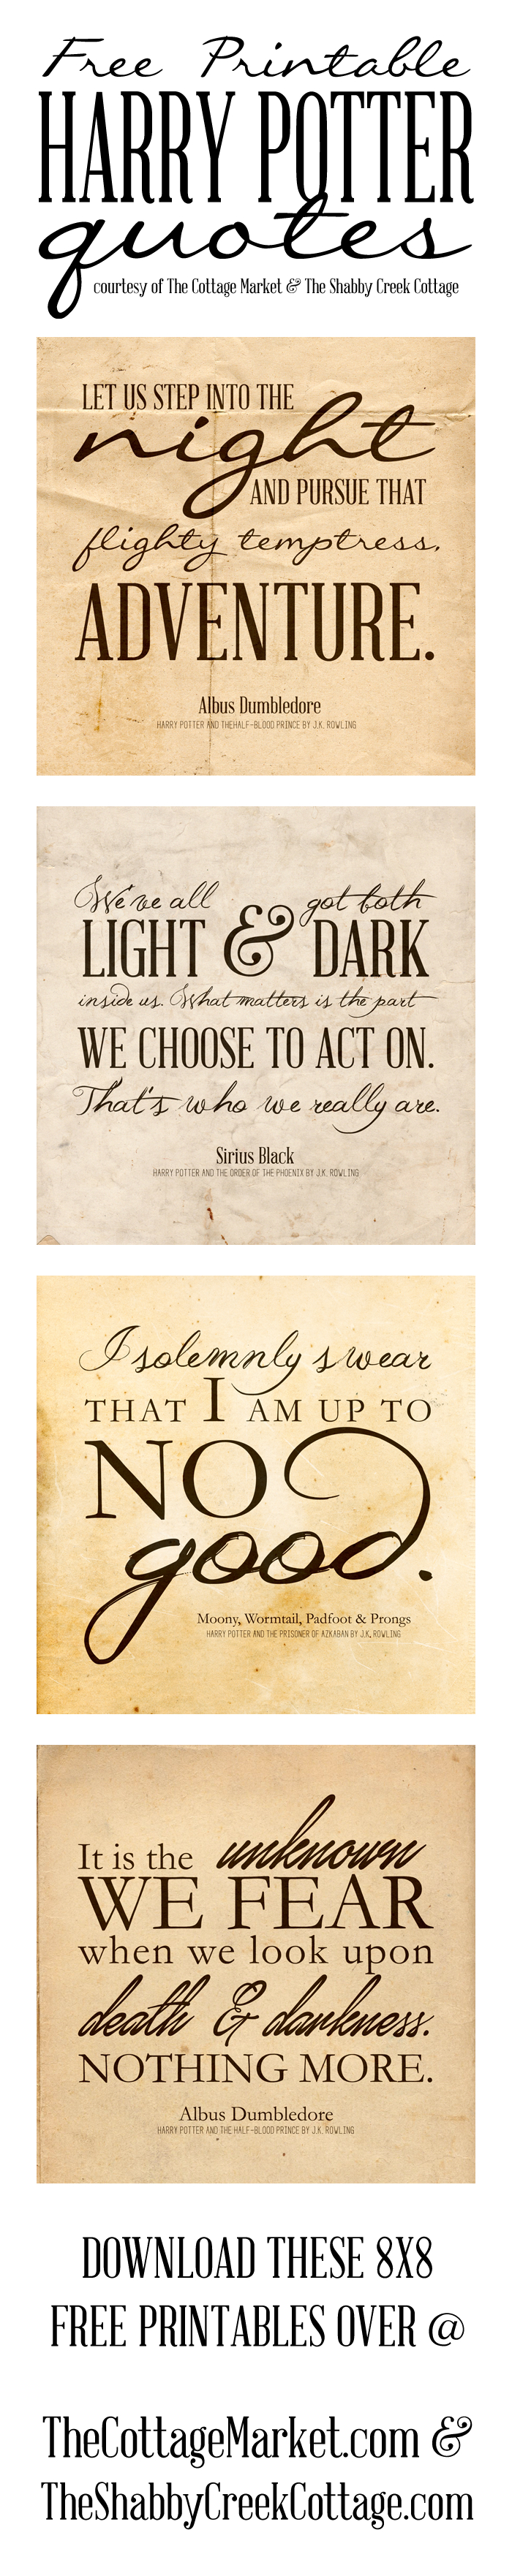 Free Harry Potter Quotes Printables - Free Printable Harry Potter Pictures